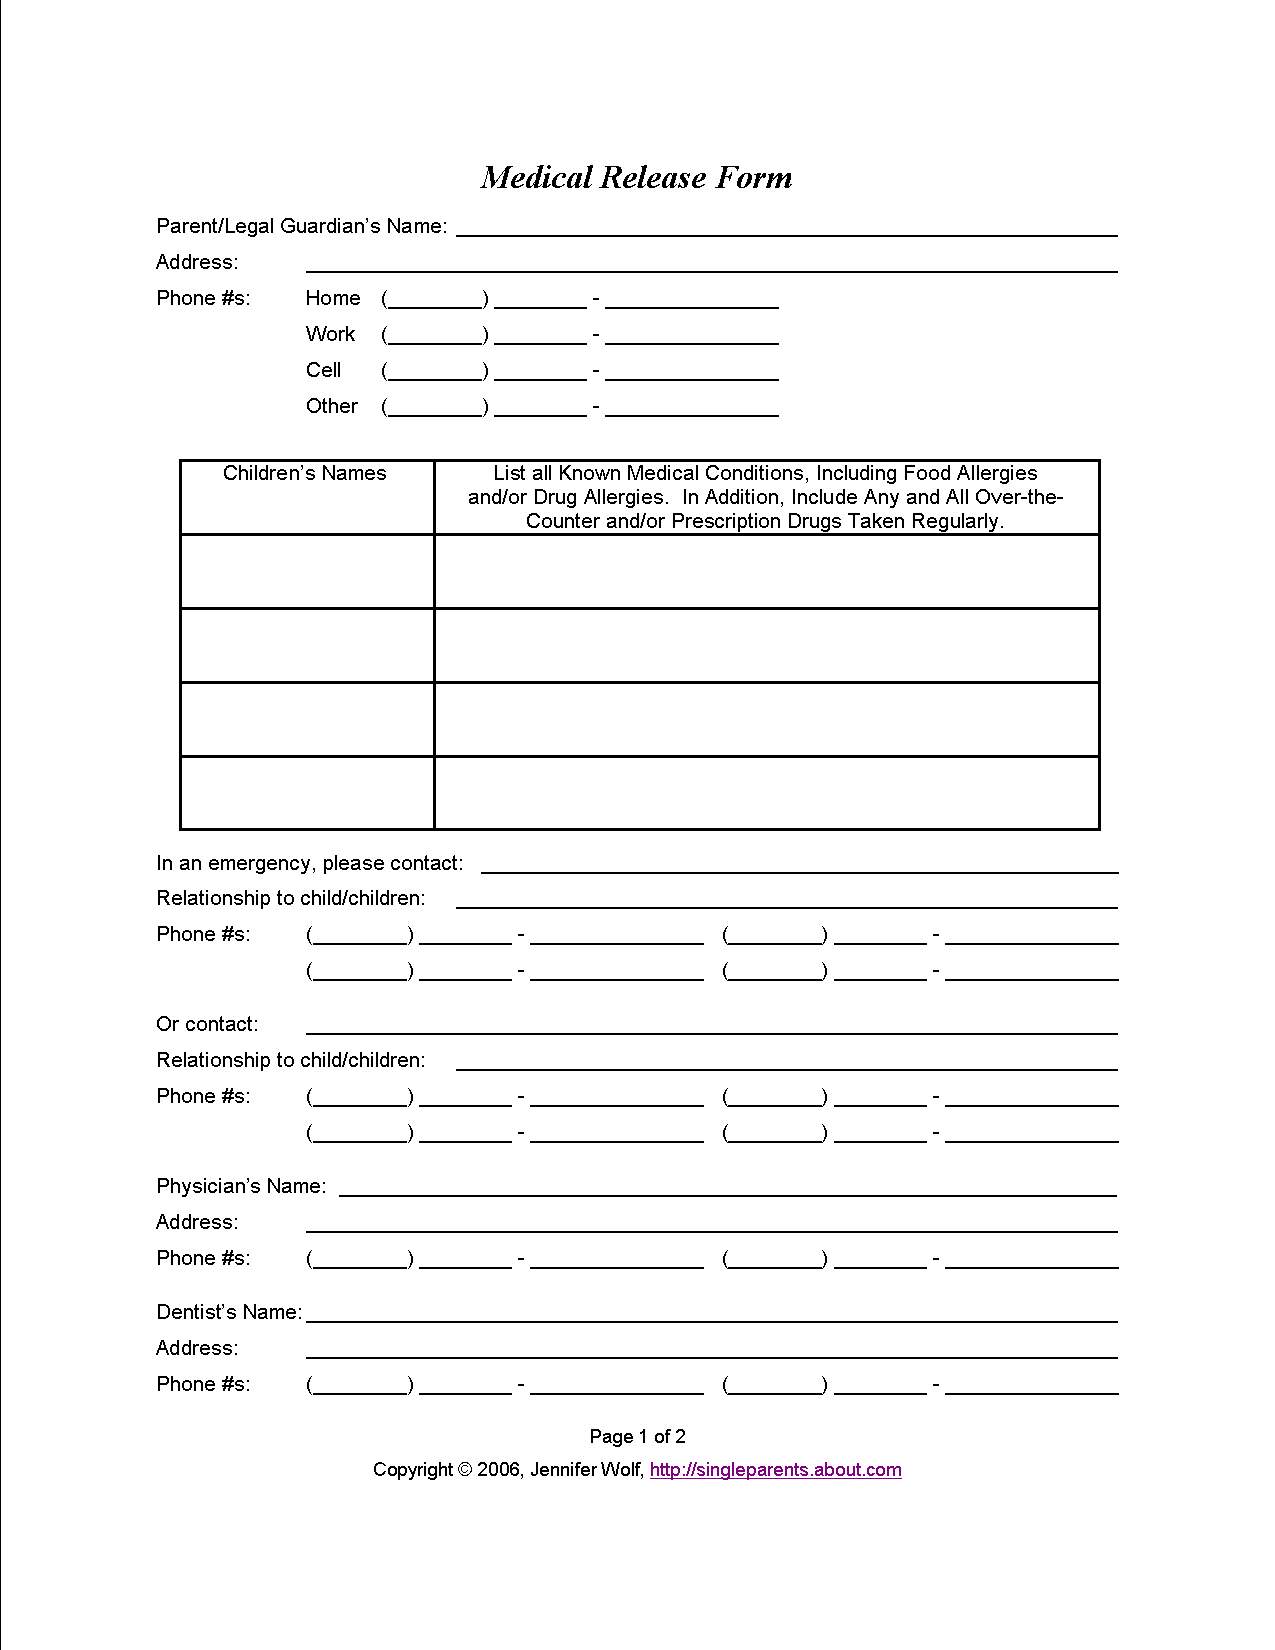 Do You Have A Medical Release Form For Your Kids? | Travel | Medical - Free Printable Medical Forms Kit